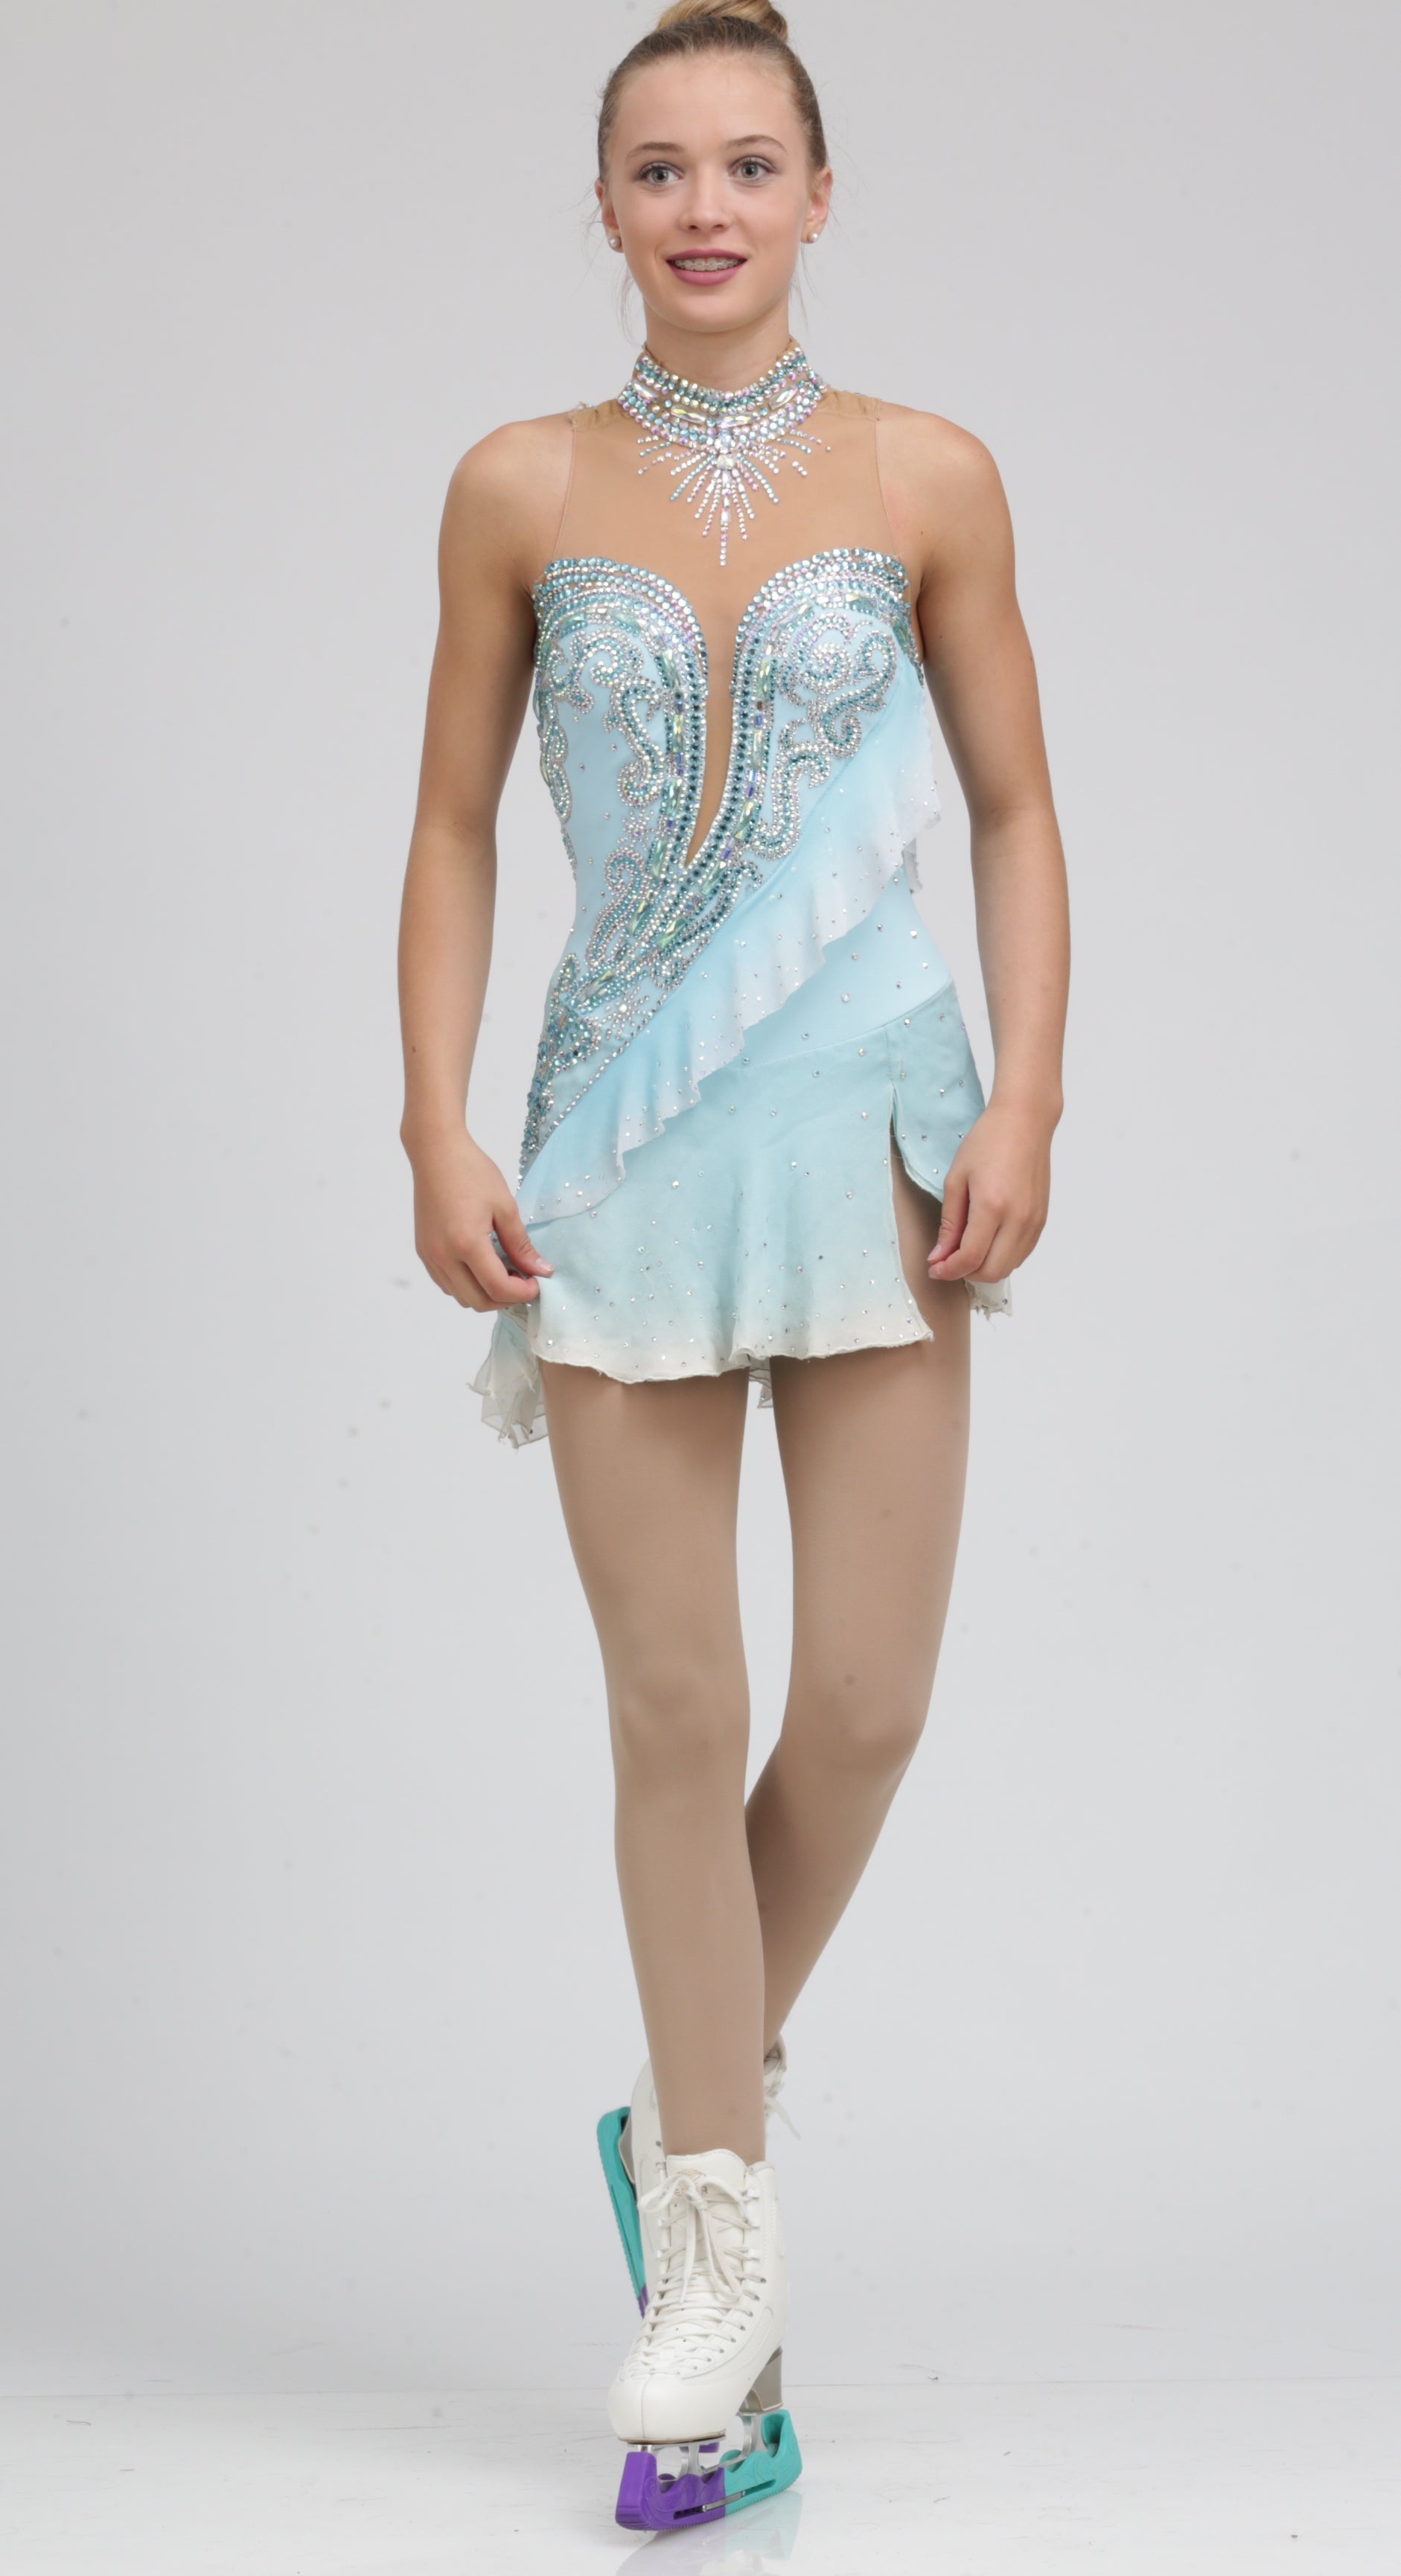 Fashion style Ice dress skating pictures for woman